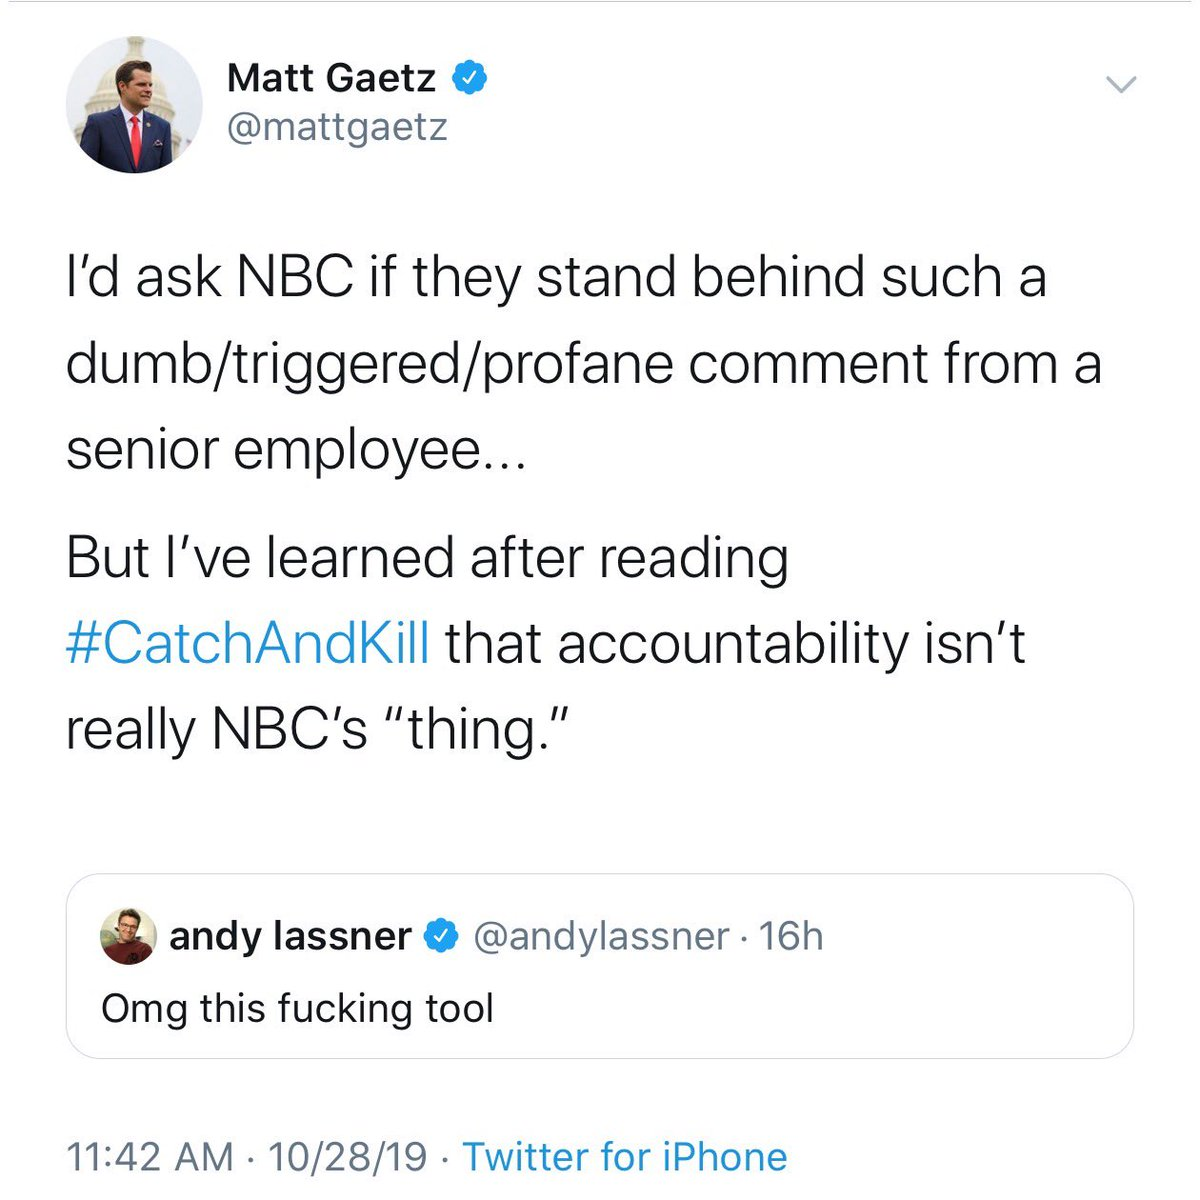 Yashar Ali On Twitter How Dare You Make This Implication Mattgaetz Referencing A Book About The Coverup Of Sexual Misconduct When Talking About Andylassner S Criticism Of You Also He S Not An Nbc I really think 2020 is gonna turn around. twitter